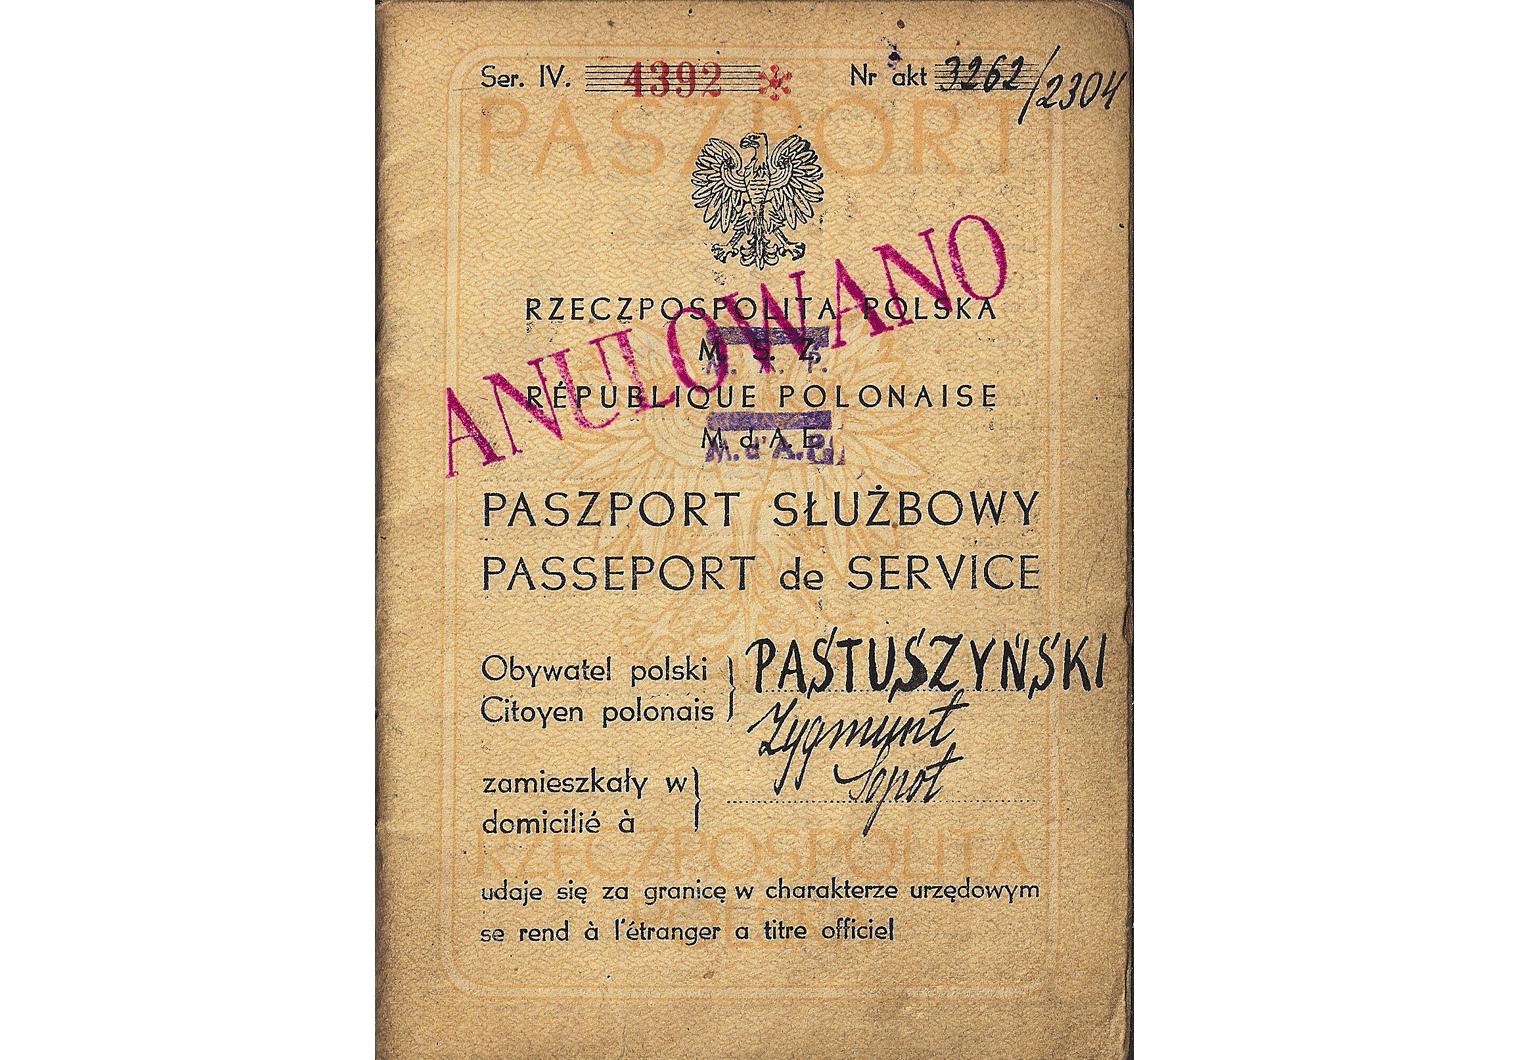 Polish service passport from 1949